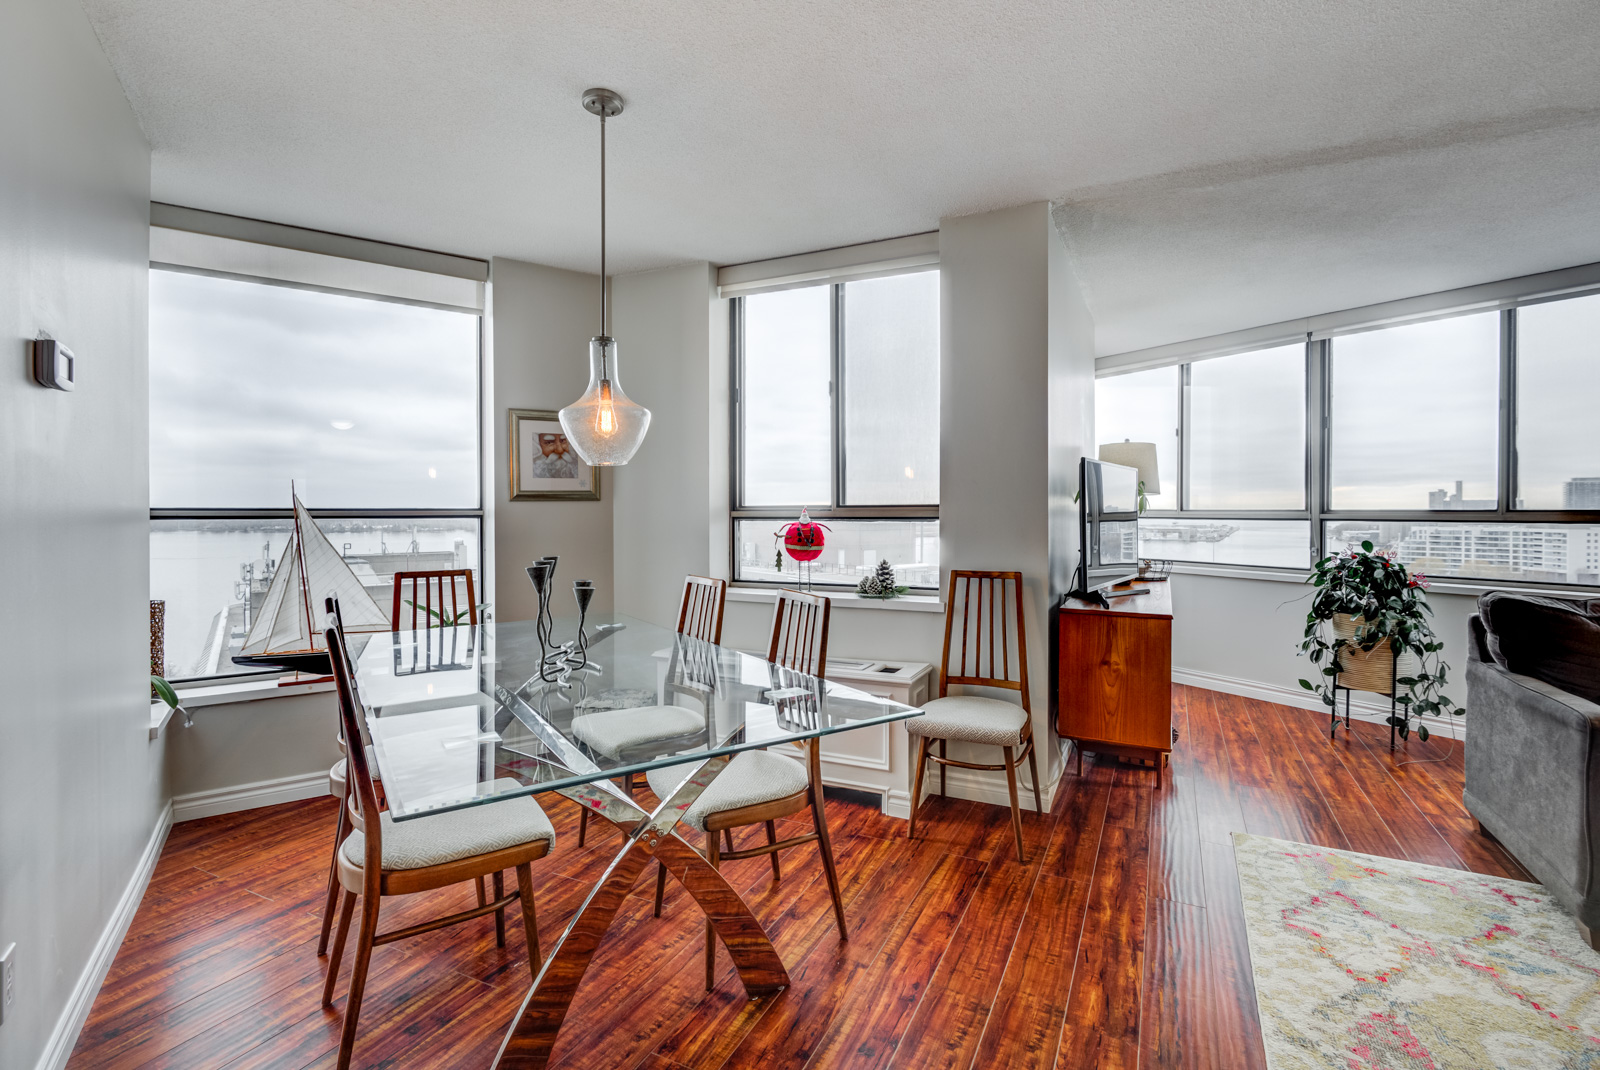 Dining room with clear glass table, red floors and window with view of Toronto Waterfront.